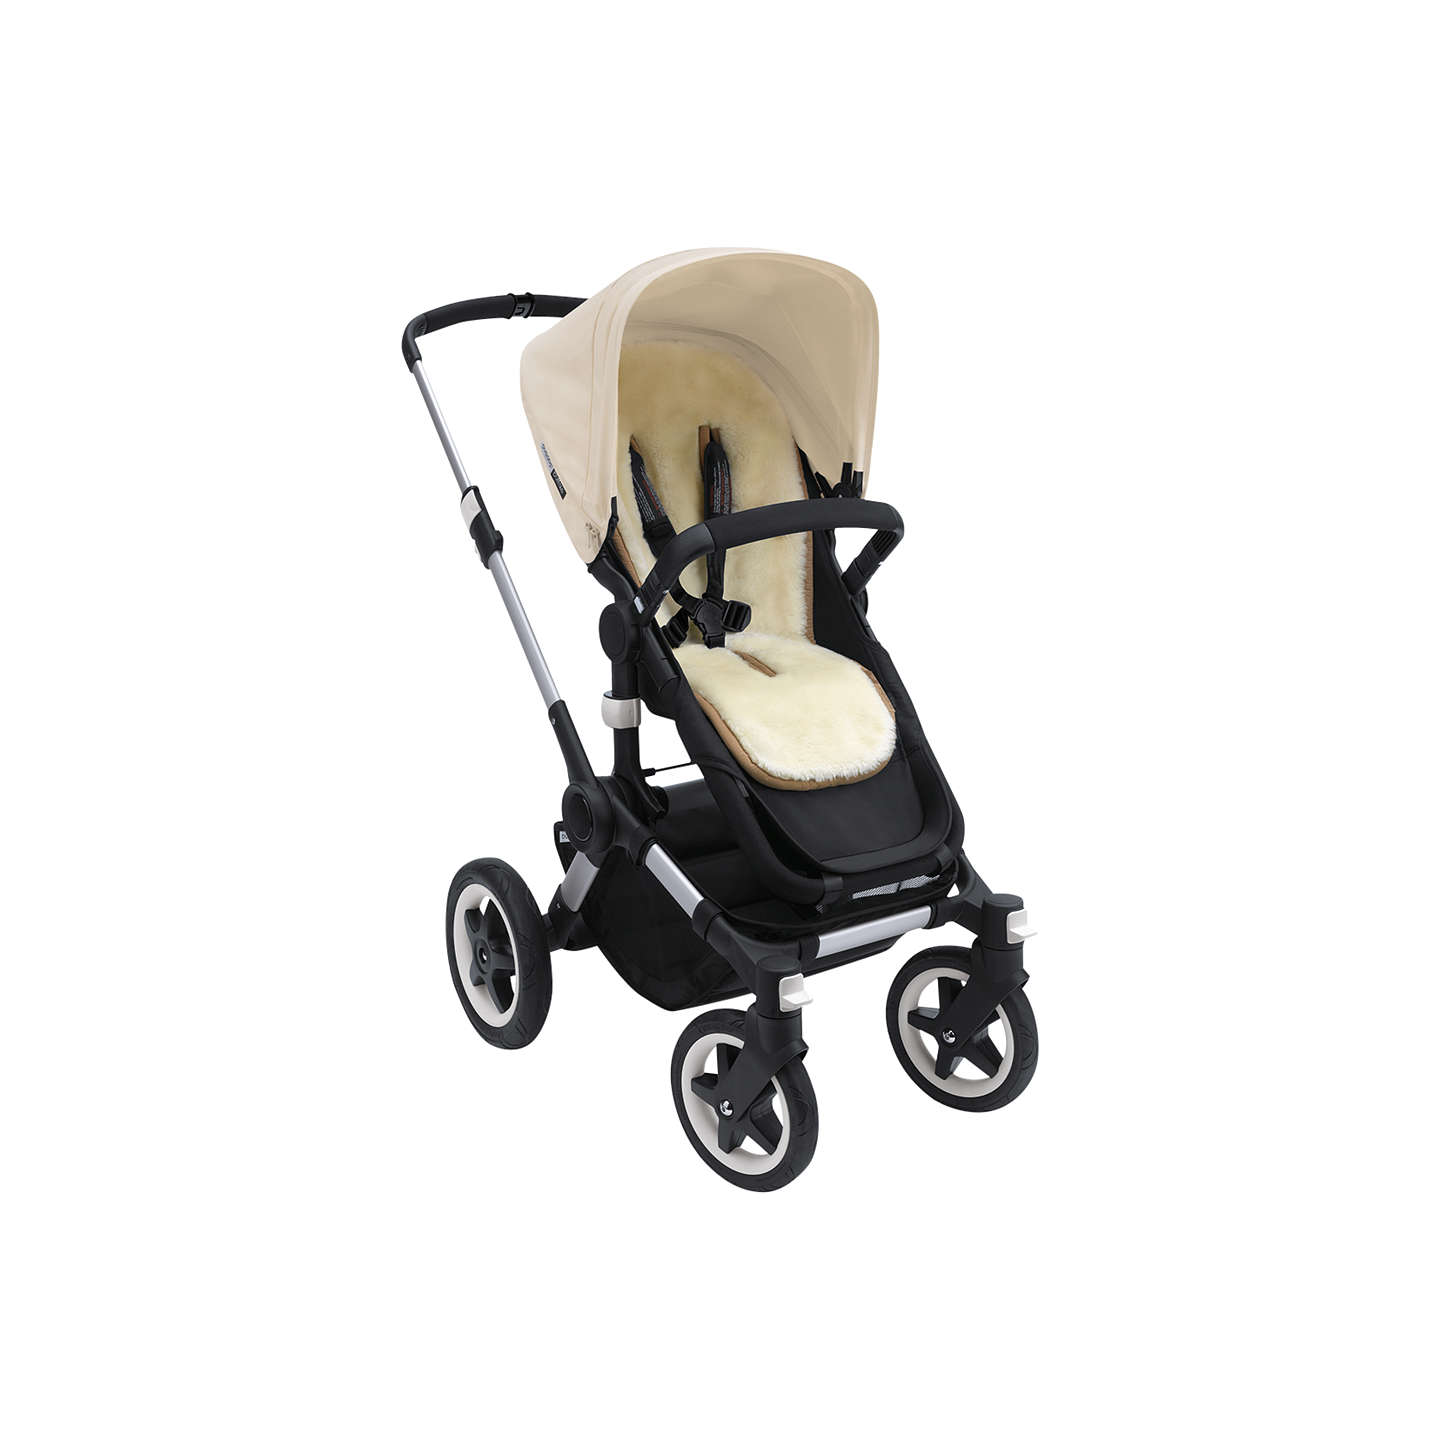 BuyBugaboo Wool Pushchair Seat Liner Online at johnlewis.com